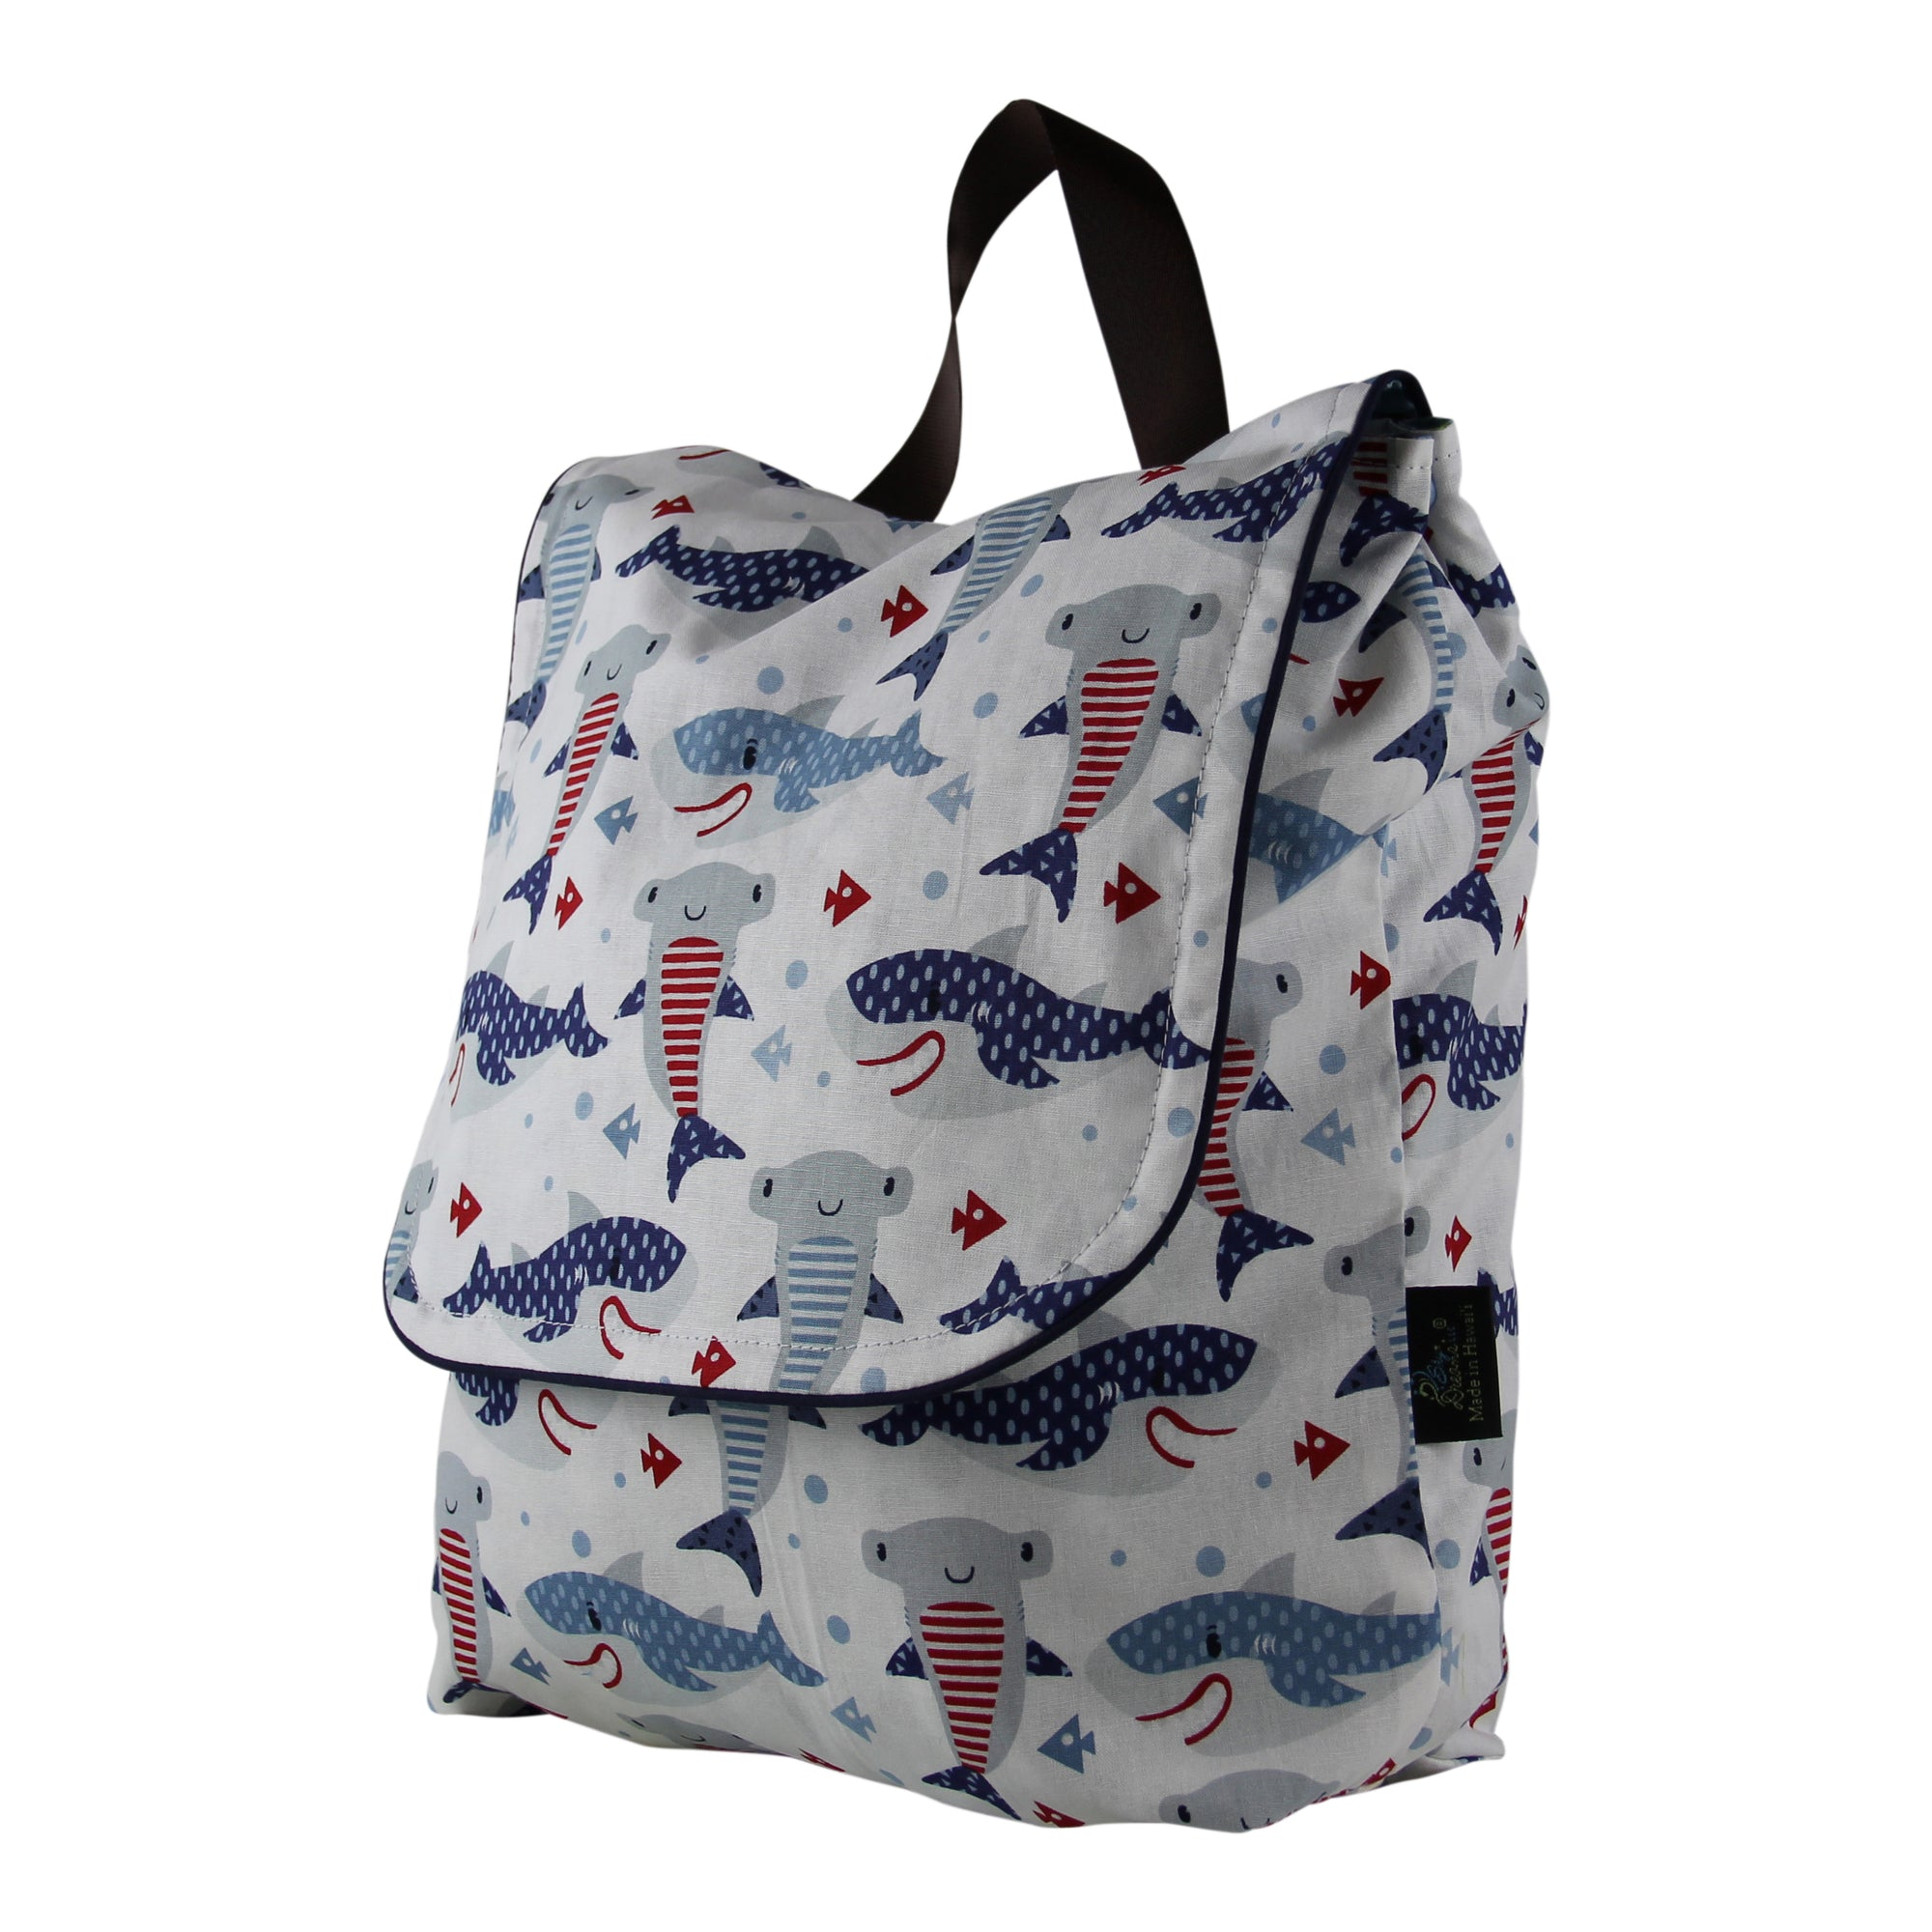 Backpack Travel blanket trio-Sweet Dreams-Shark a Doo